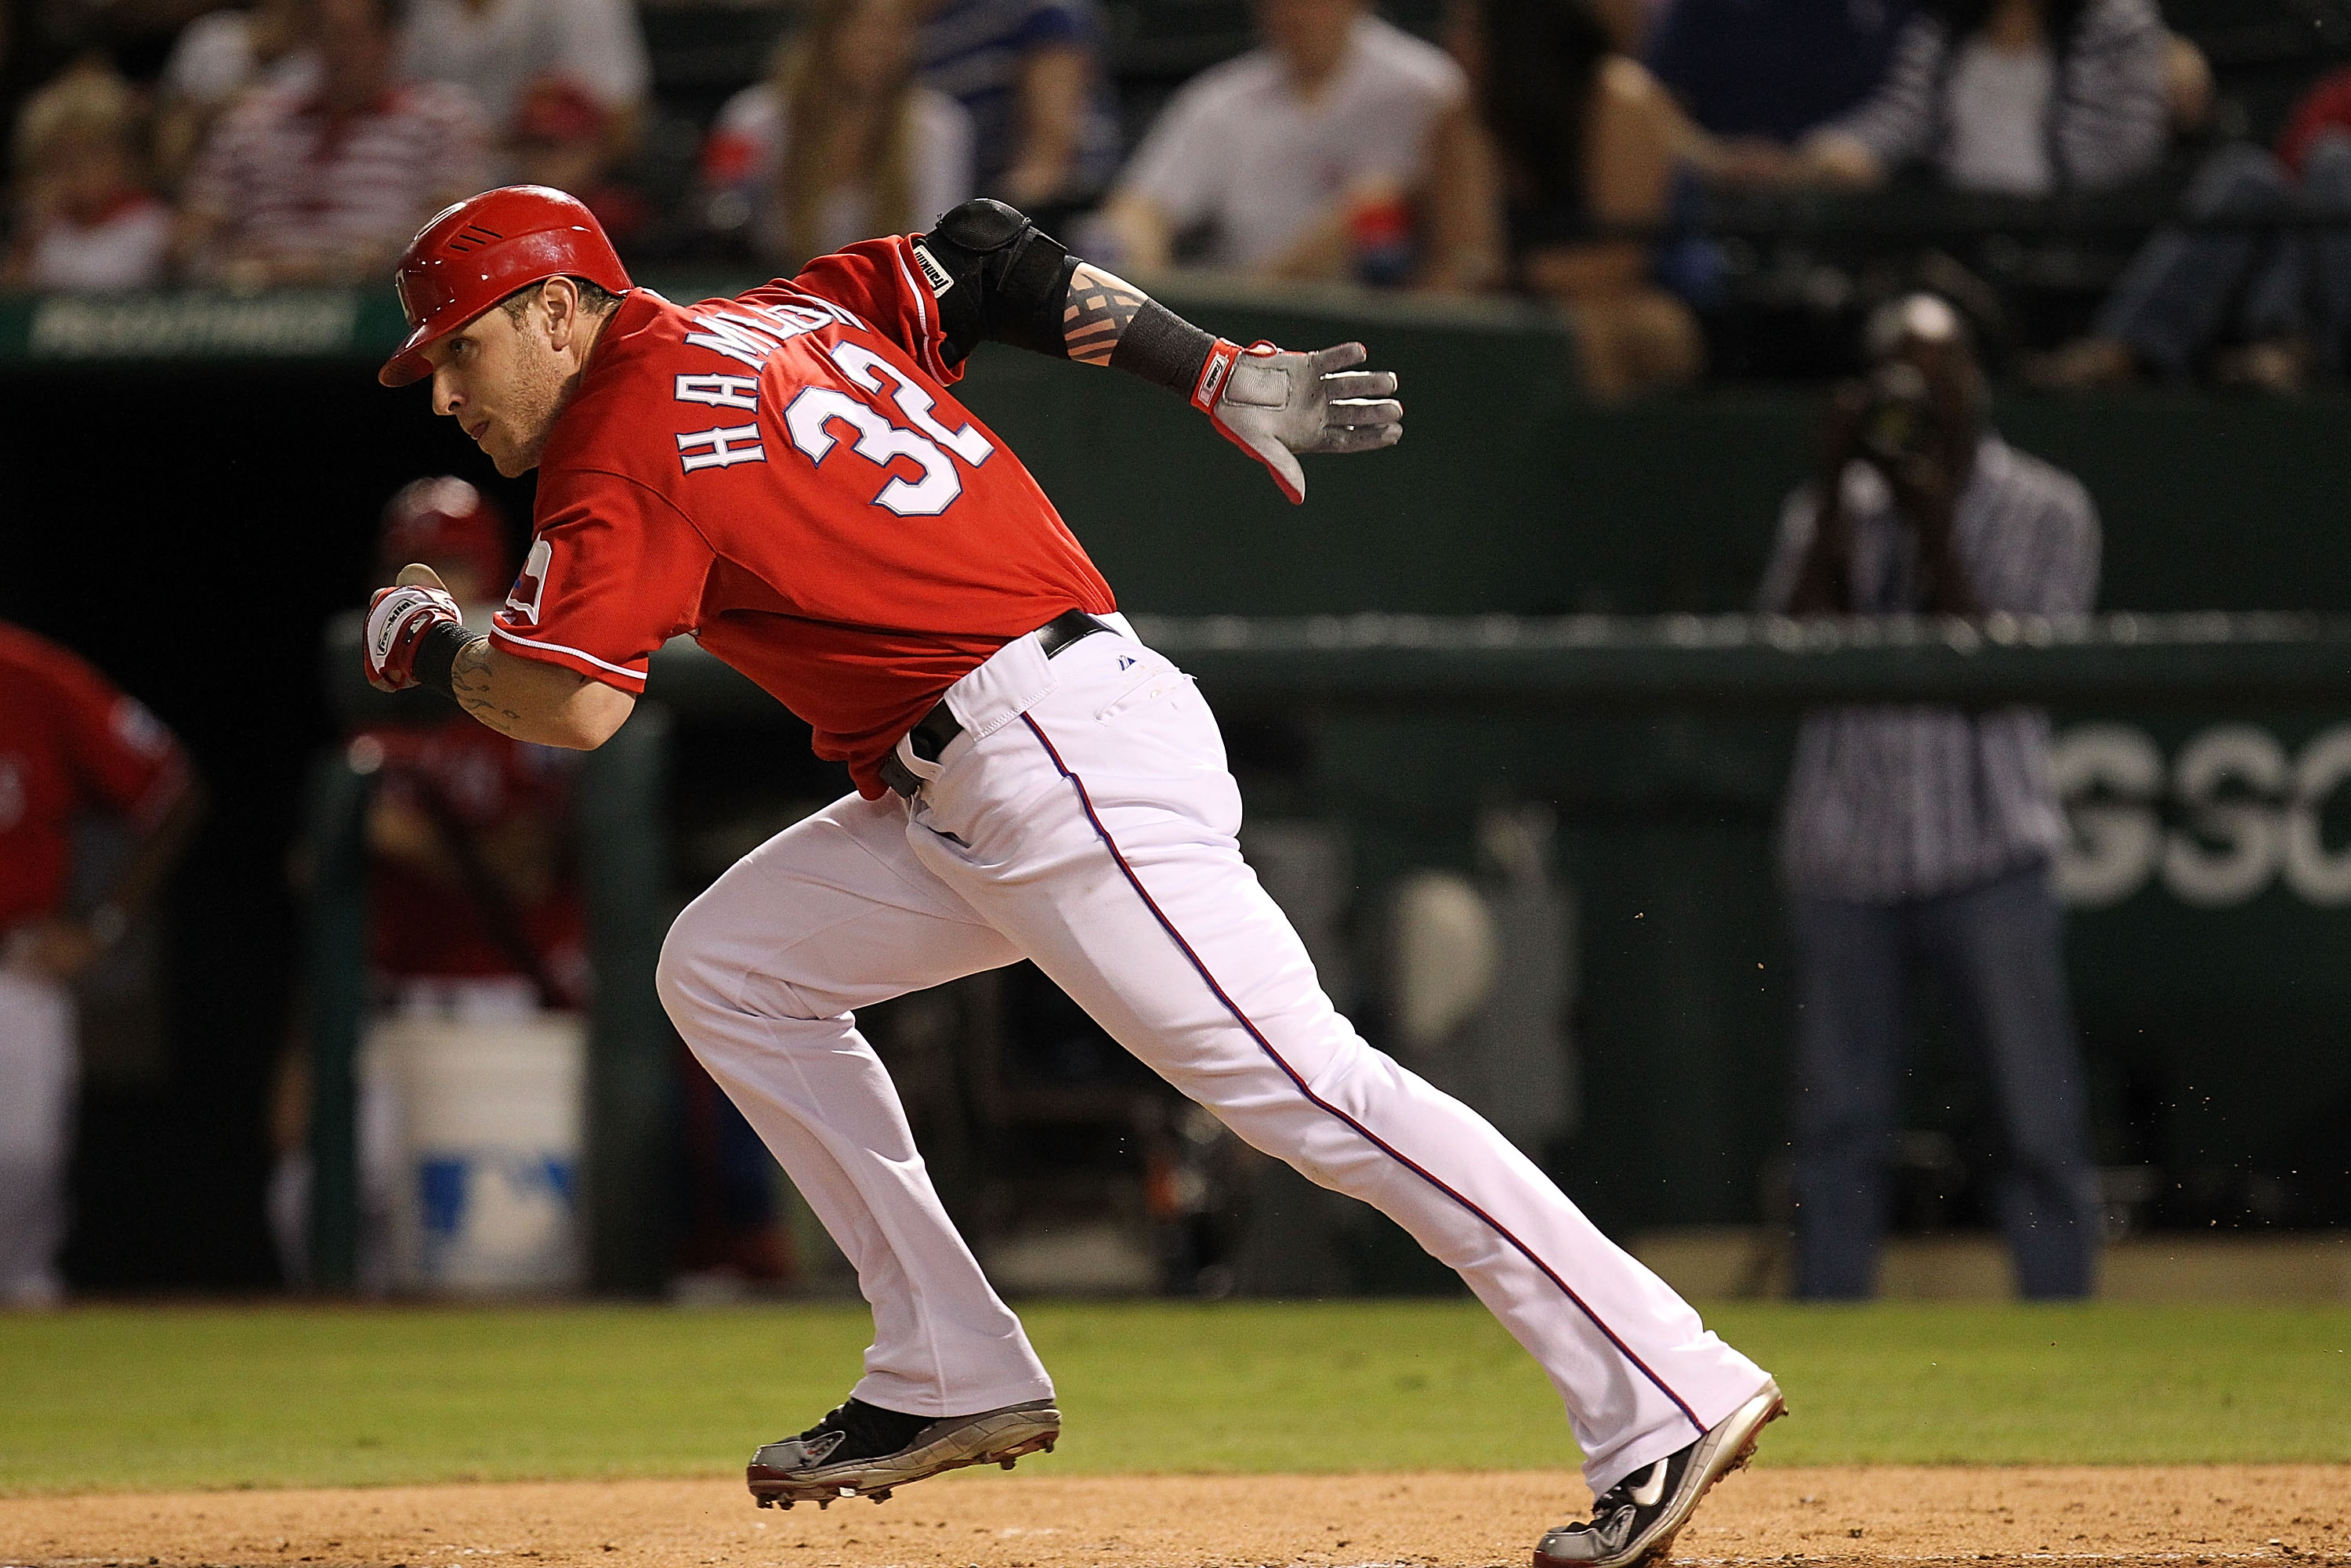 ARLINGTON, TX - OCTOBER 01:  Josh Hamilton #32 of the Texas Rangers runs on a ground out against Los Angeles Angels of Anaheim at Rangers Ballpark in Arlington on October 1, 2010 in Arlington, Texas.  (Photo by Ronald Martinez/Getty Images)